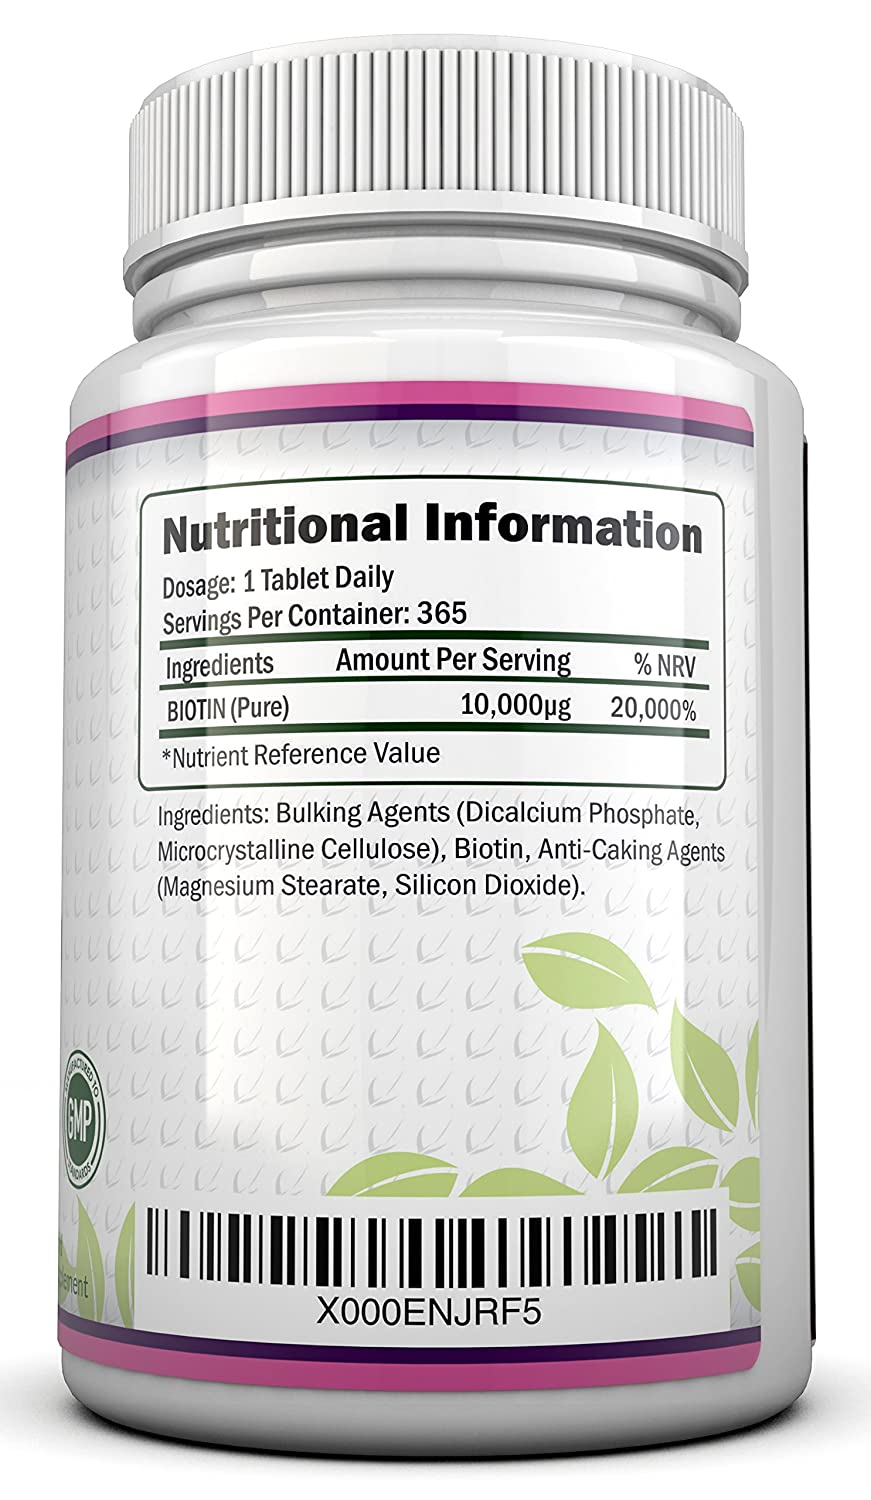 What is the daily dose of biotin?